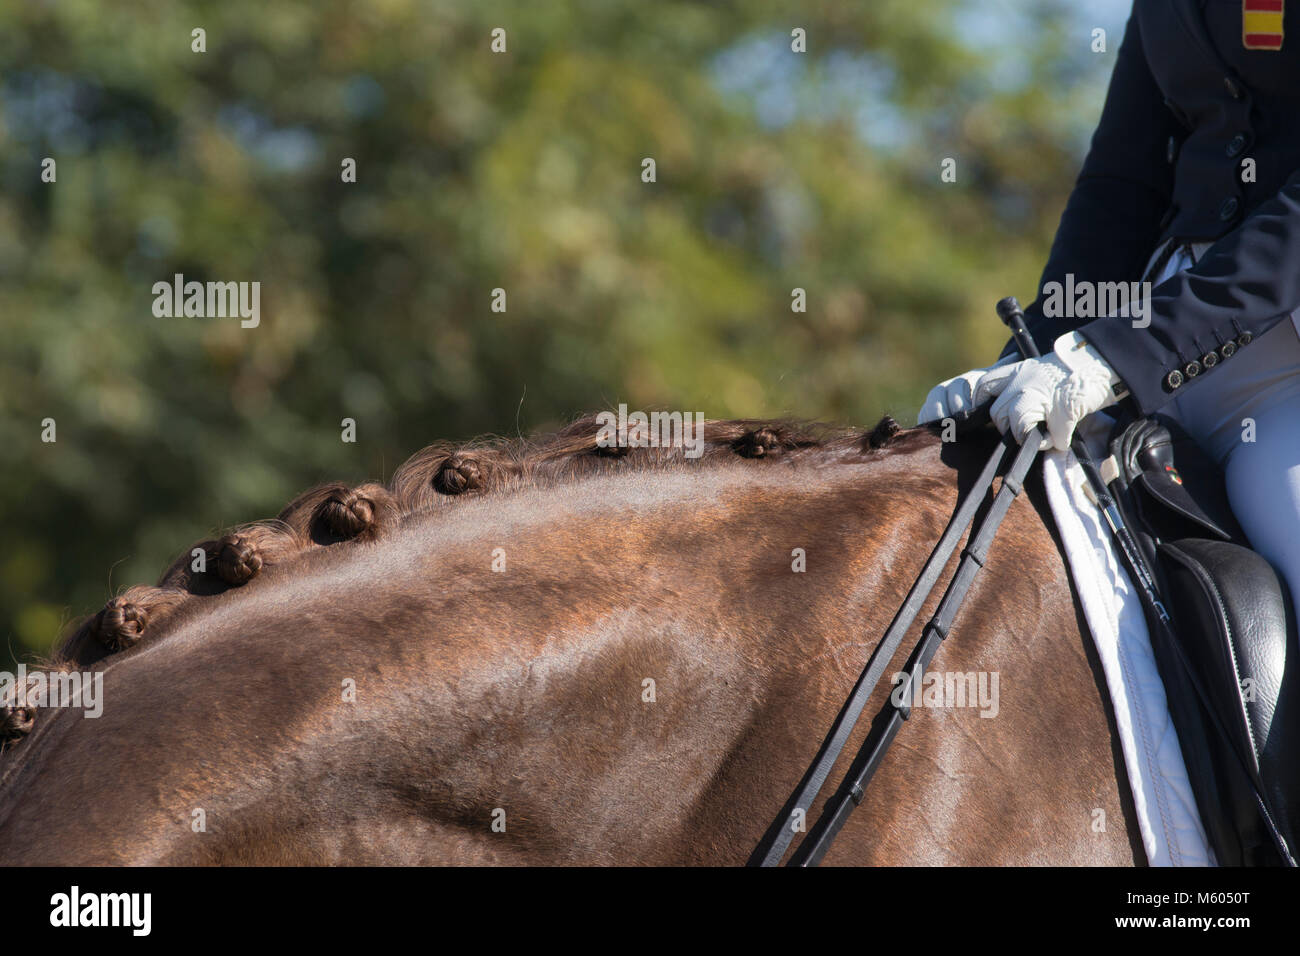 Detail of equine button braids in dressage - Stock Image